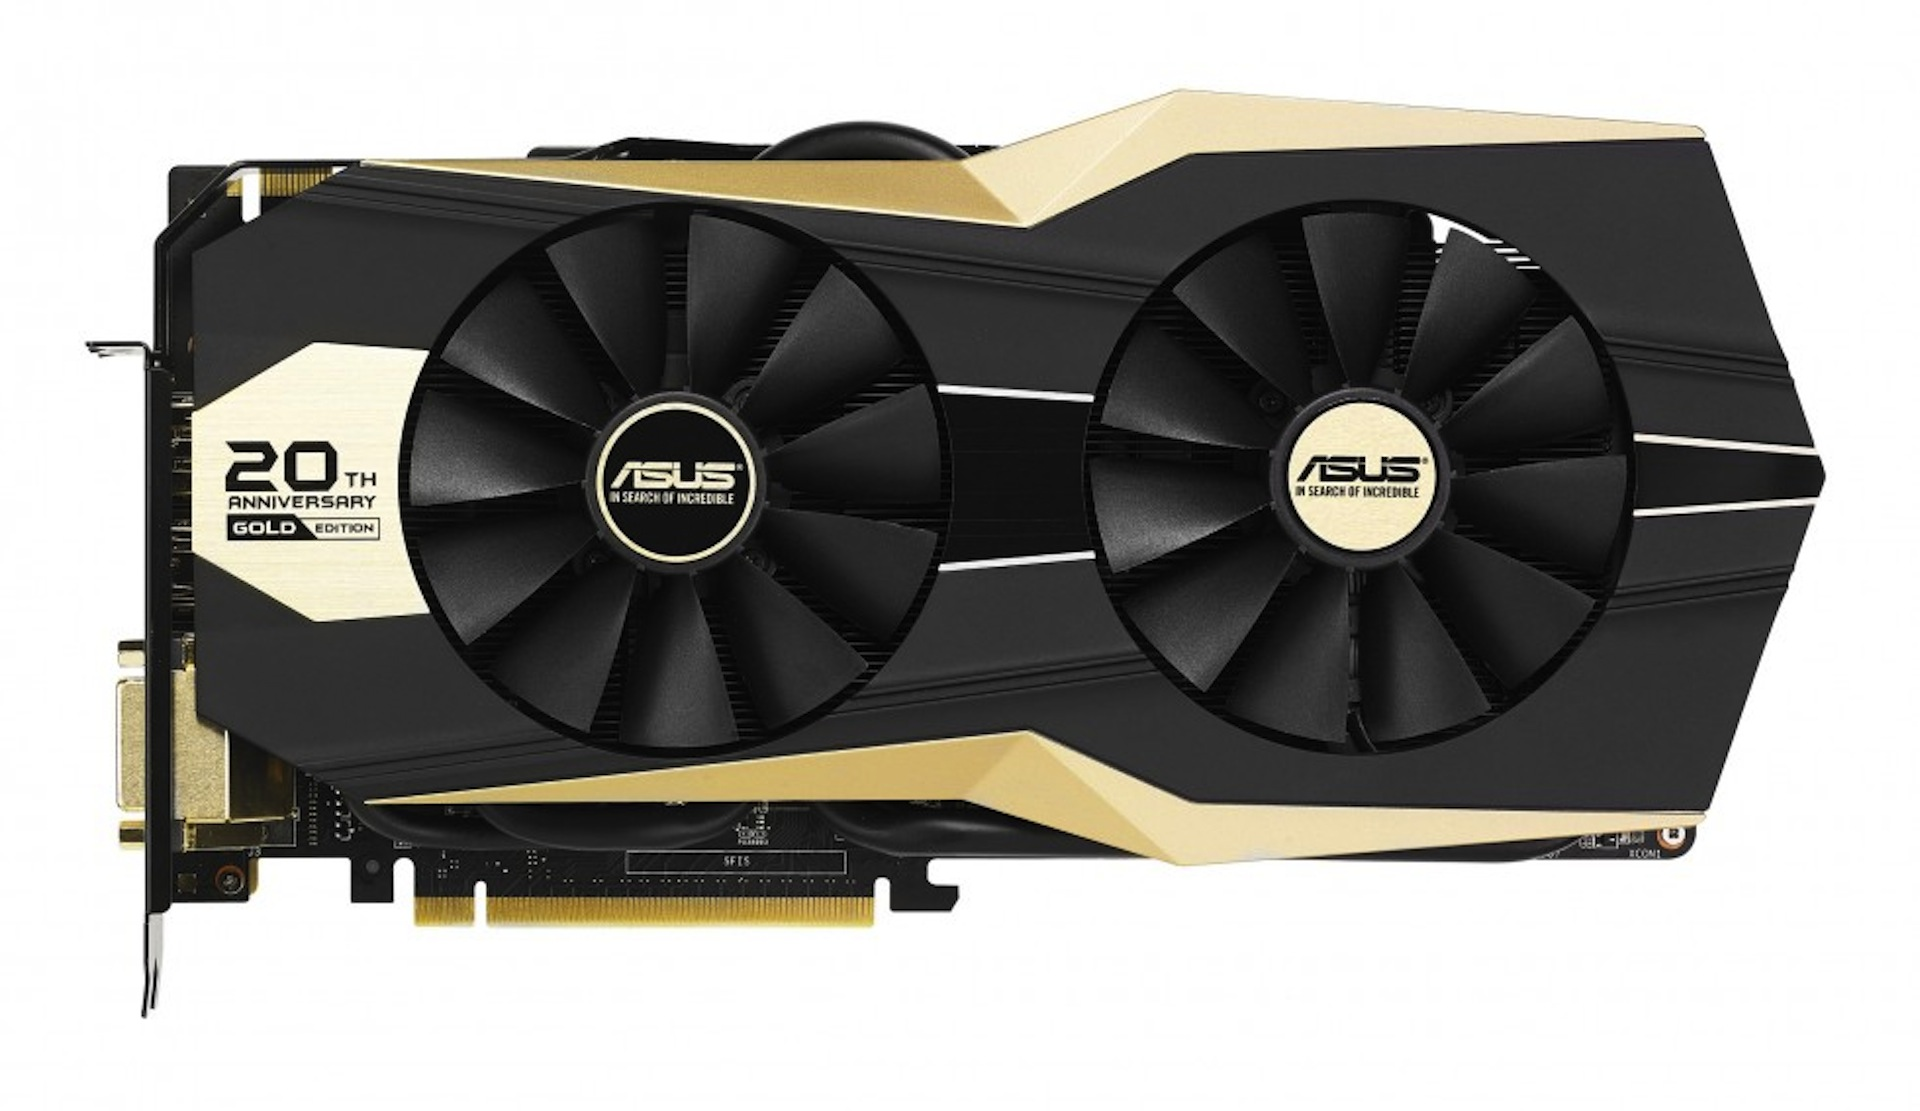 ASUS Releasing a Limited Edition 20th Anniversary Graphics Card